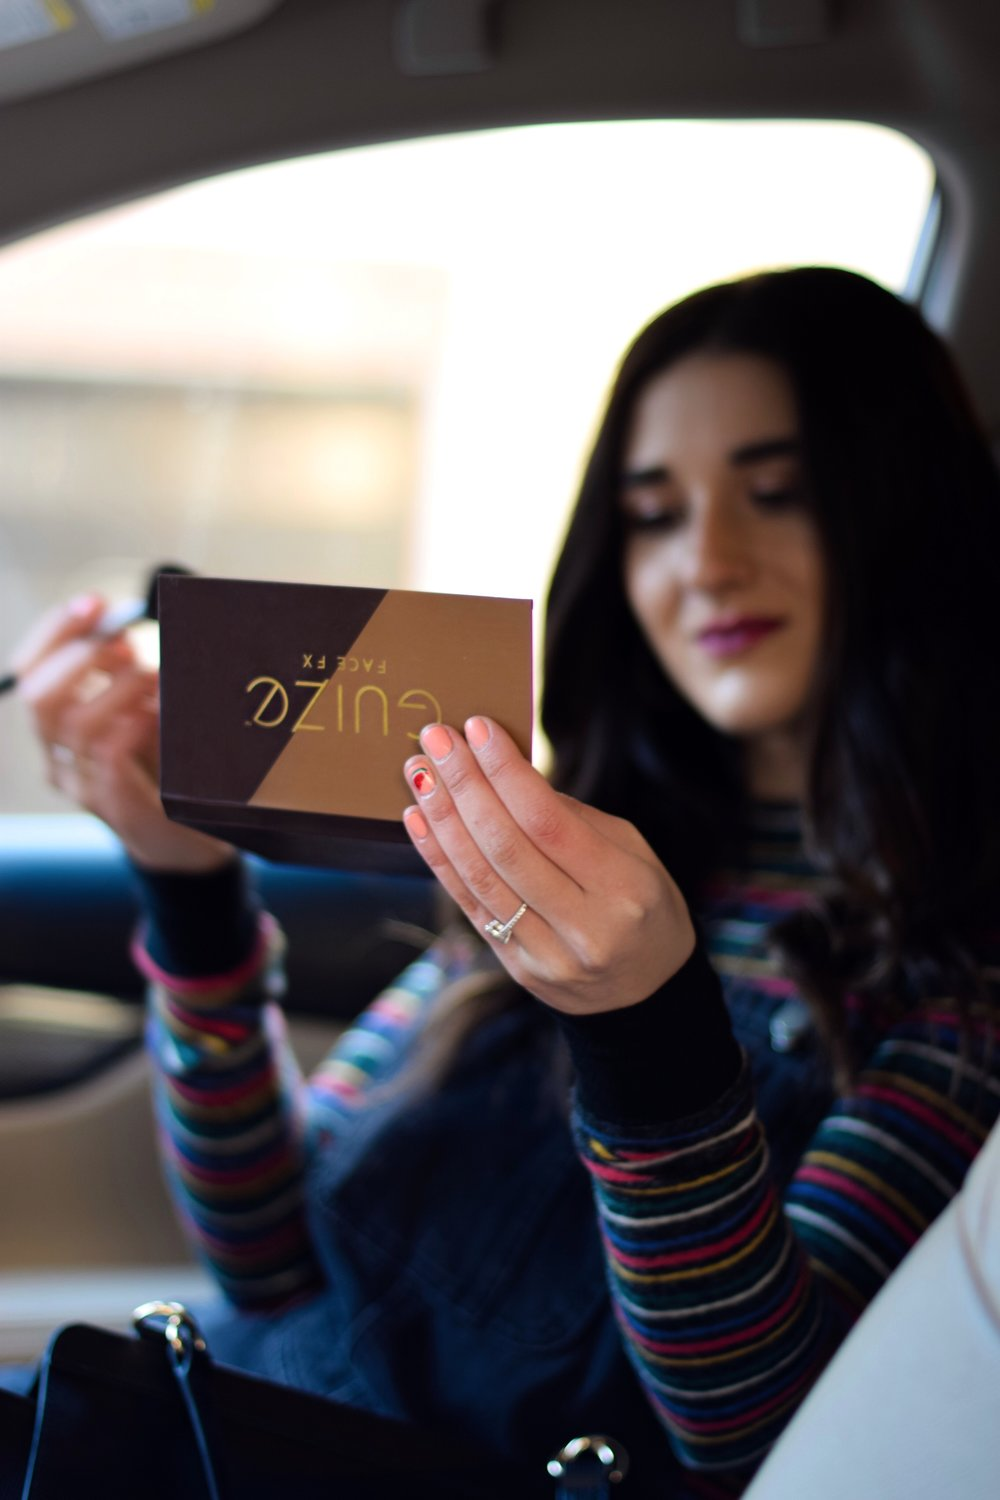 Guize Face FX Contour Palette Review Esther Santer Fashion Blog NYC Street Style Blogger Outfit OOTD Trendy Makeup Beauty Product Bronzer Highlighter Powder Brush Shopping Value $40 Radiant Glow Skin Beautiful Shades New York City Brand Company Collab.jpg